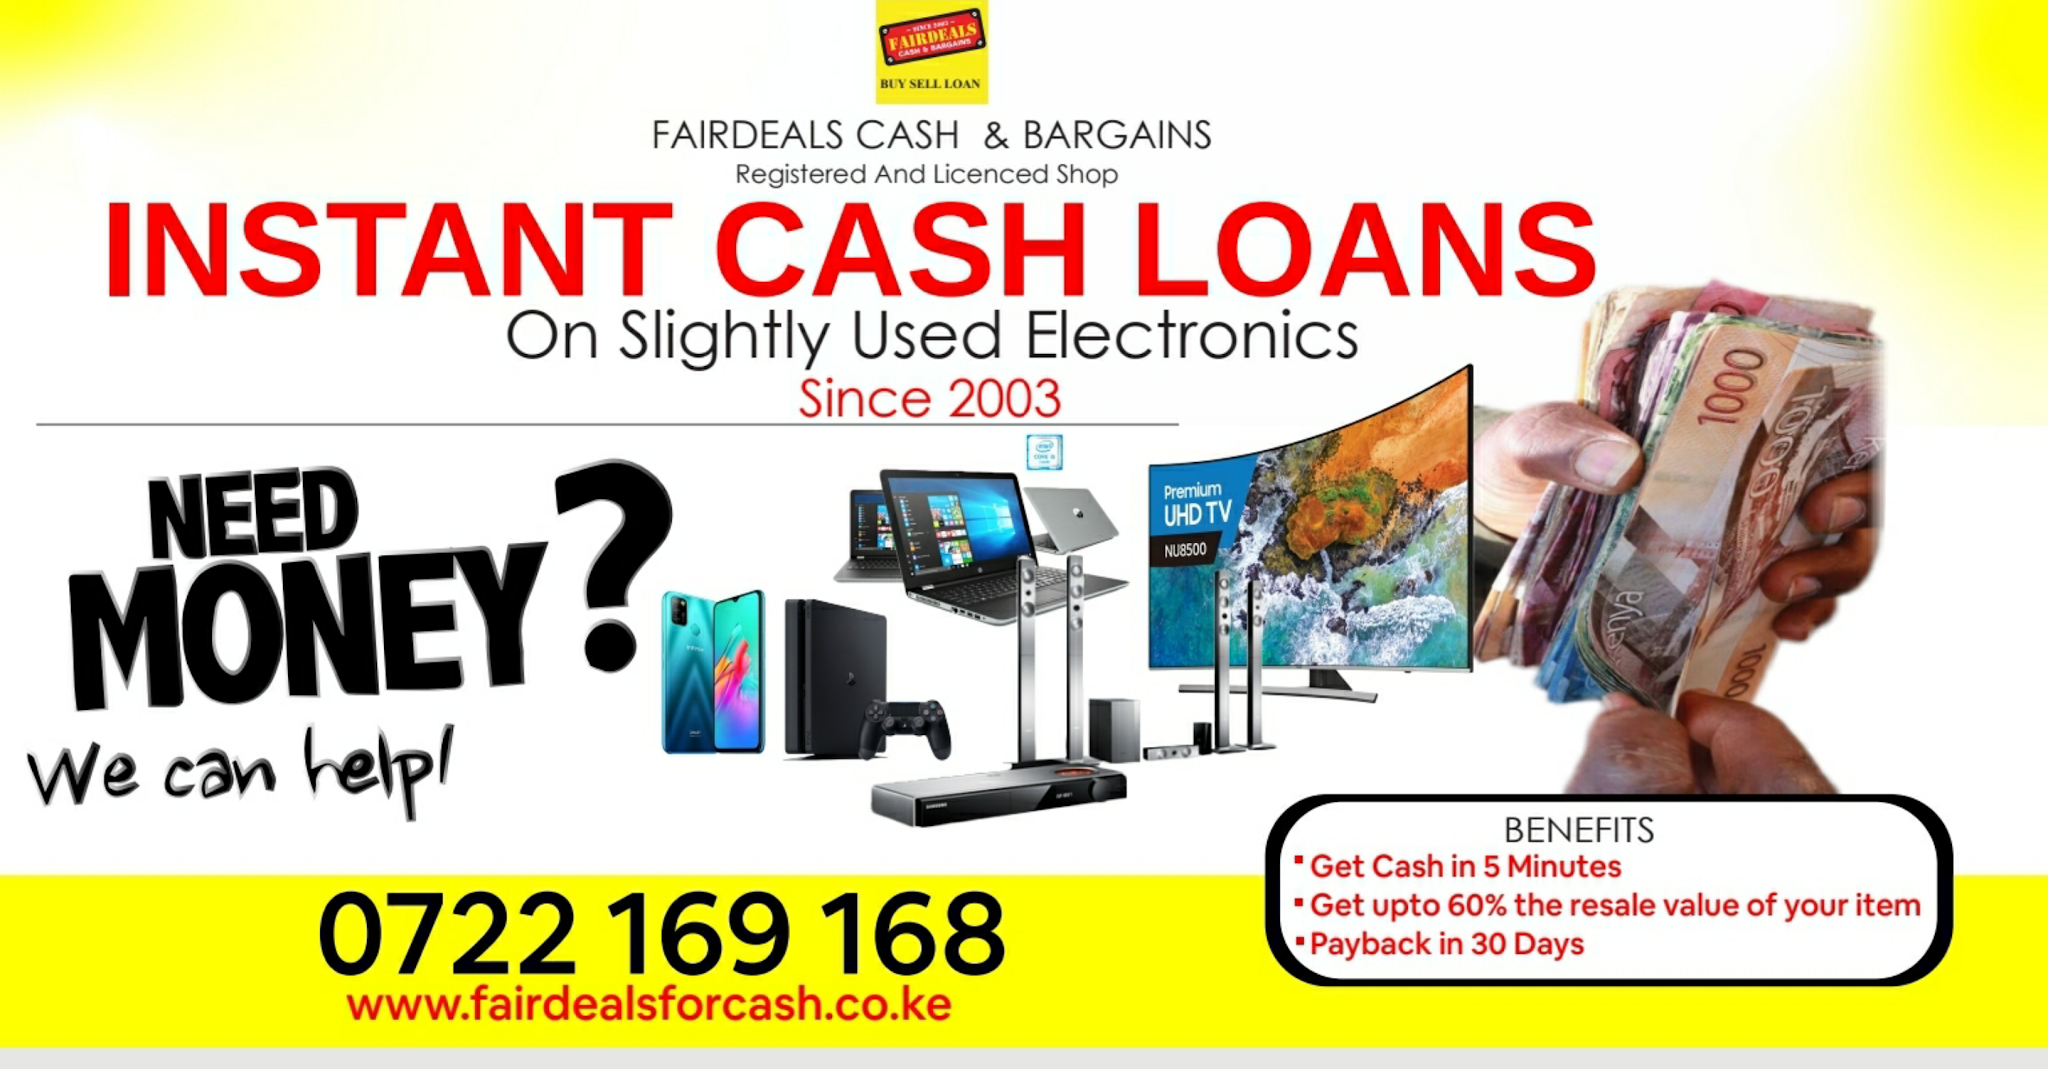 Fairdeals For Cash